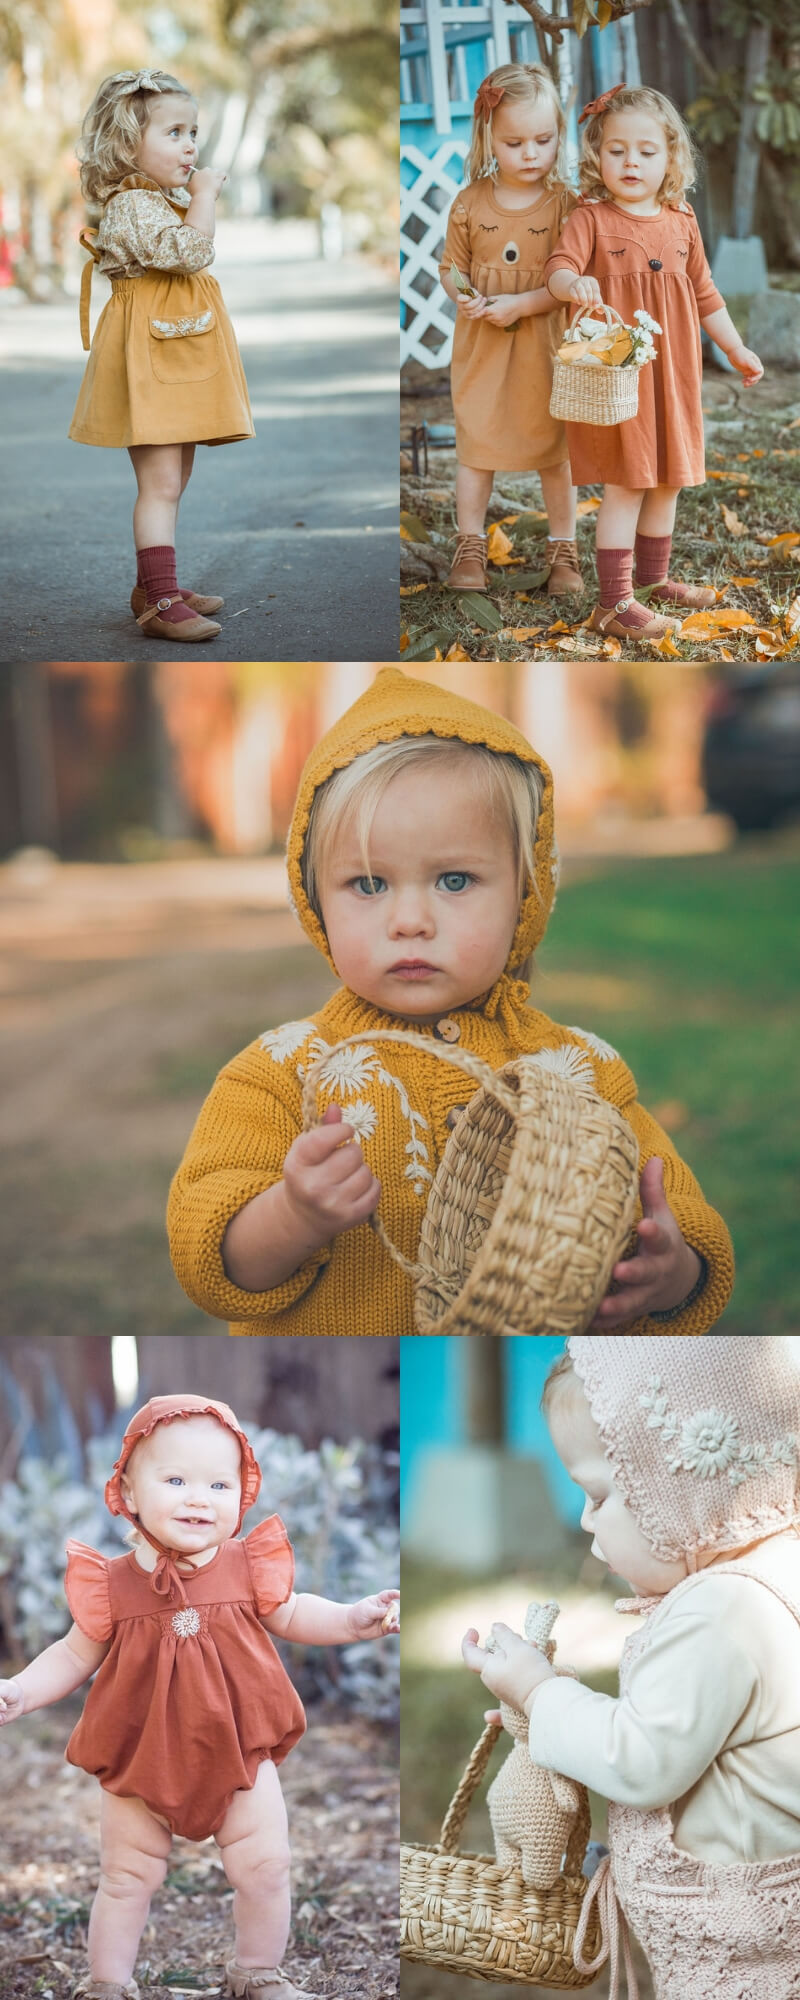 Paul & Paula: wild wawa embroidered knitwear for kids